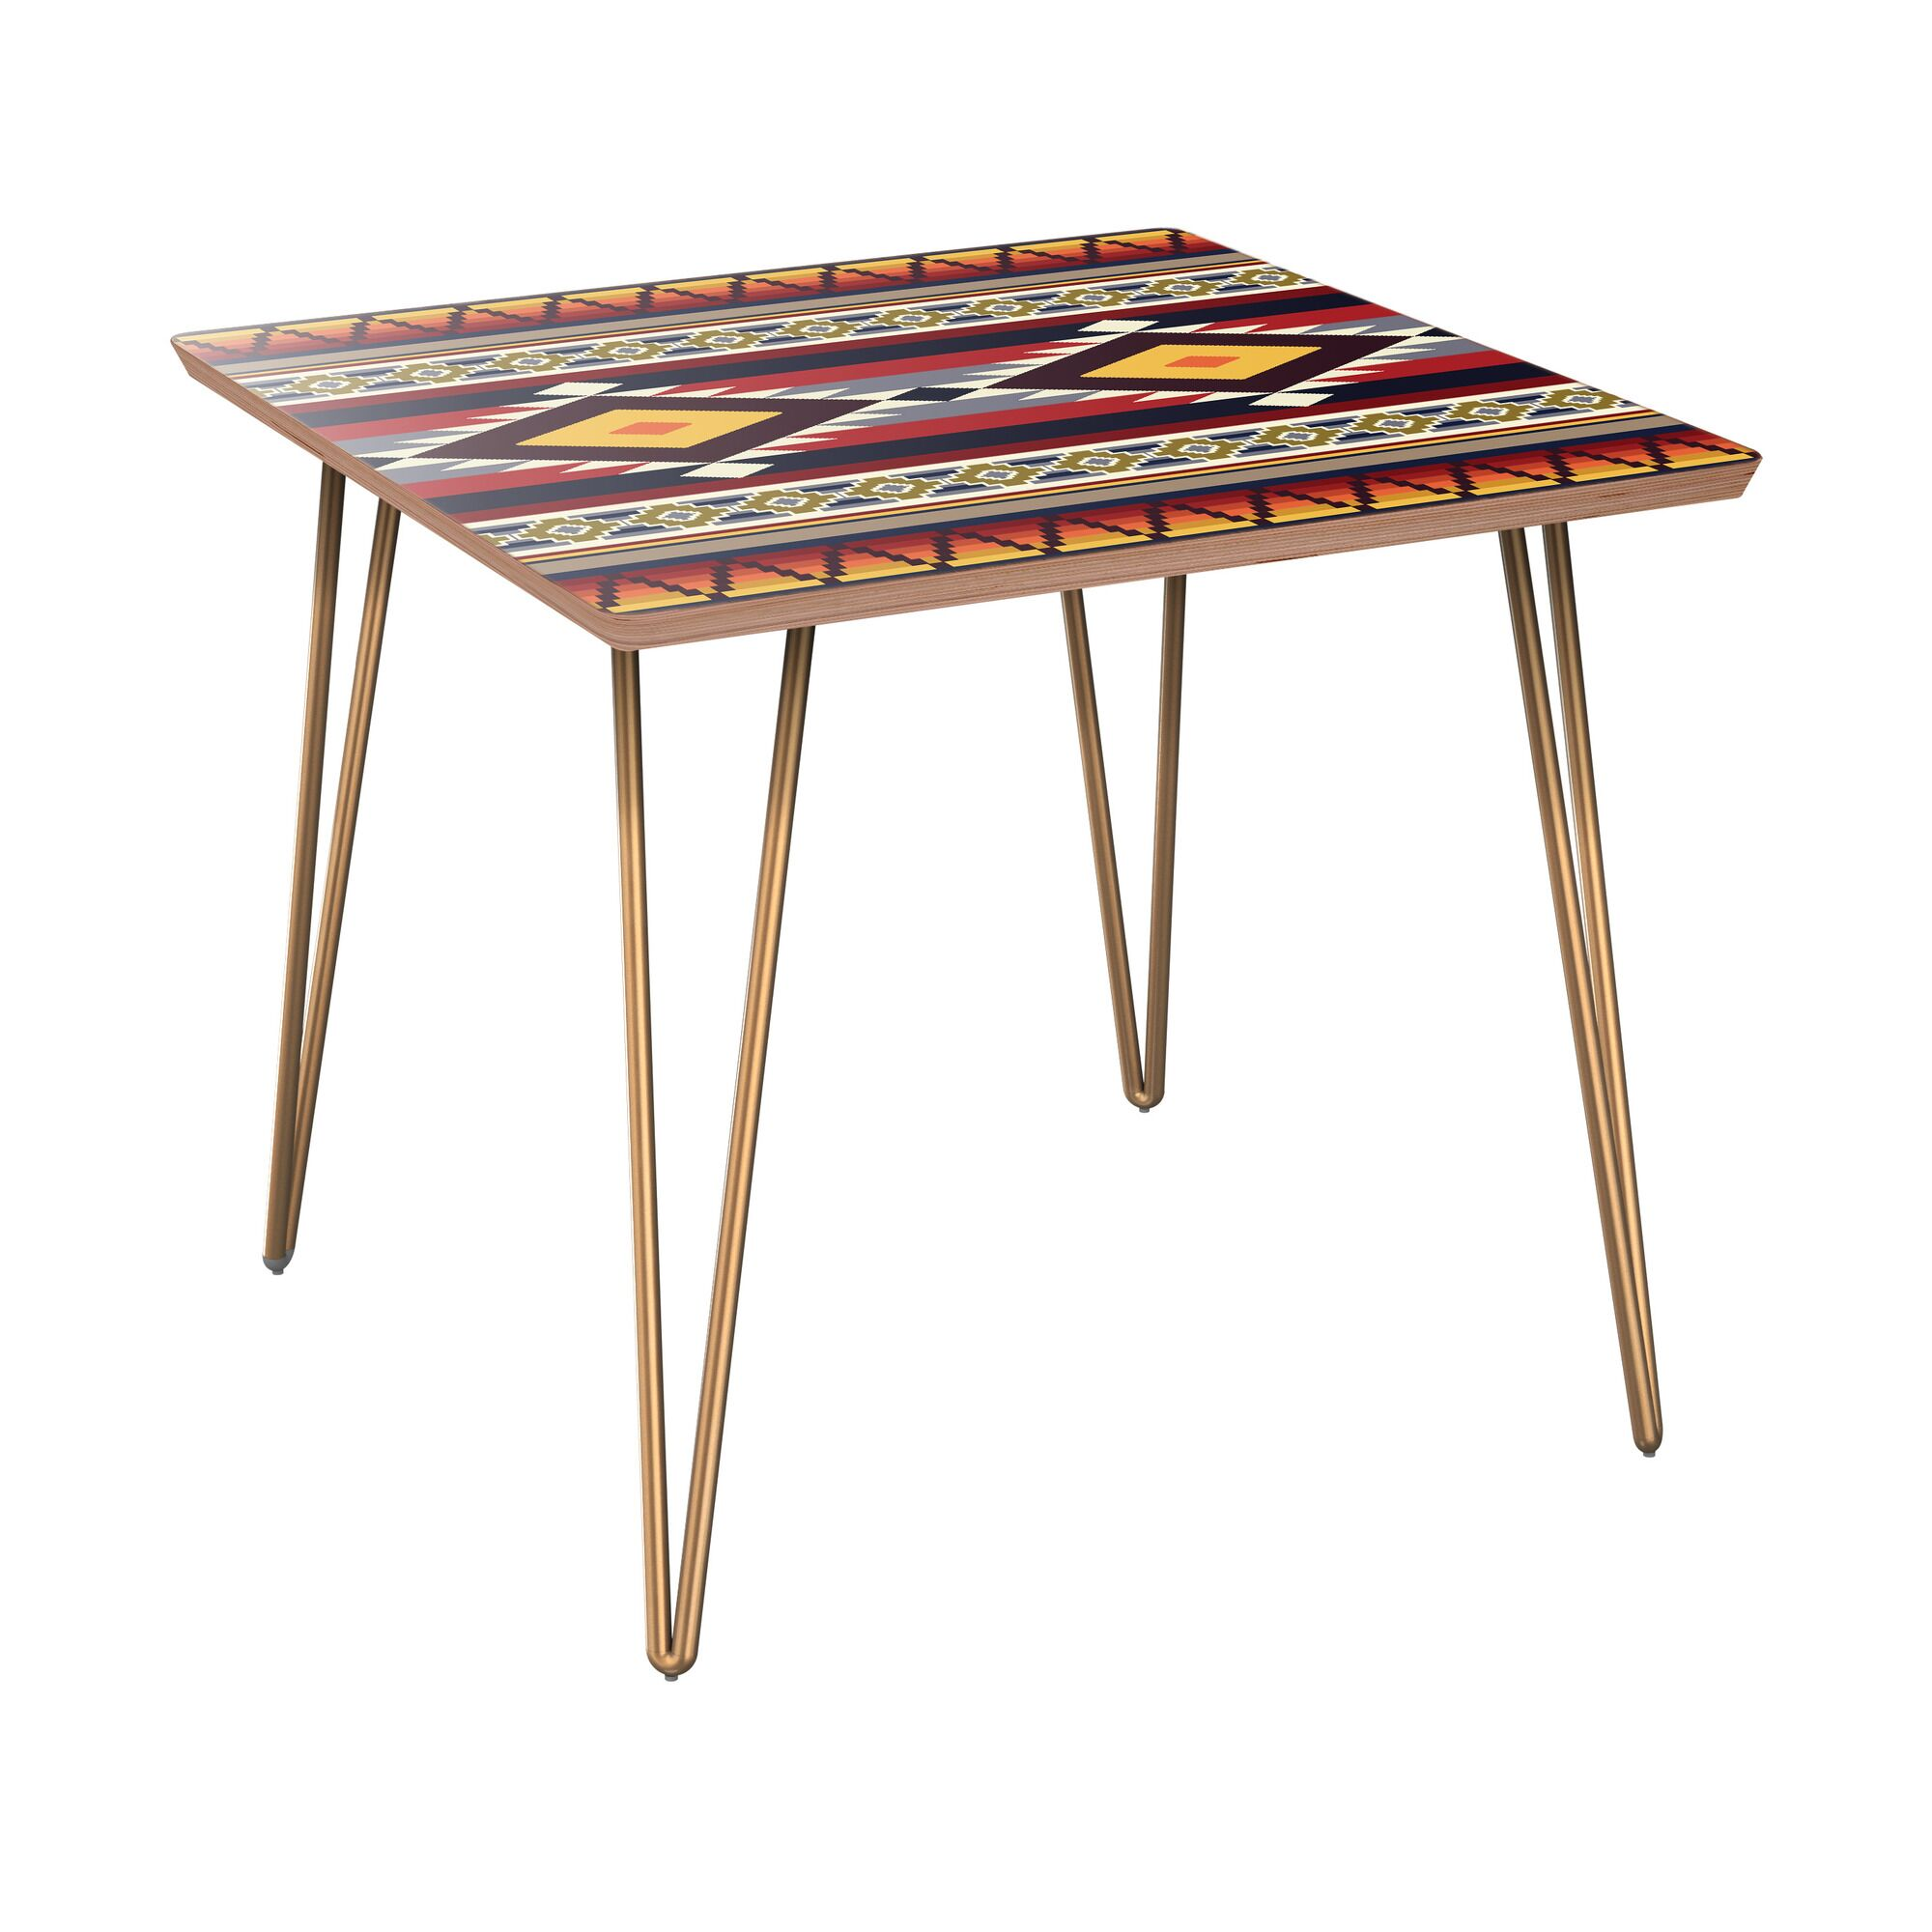 Ischua End Table Table Base Color: Brass, Table Top Color: Walnut